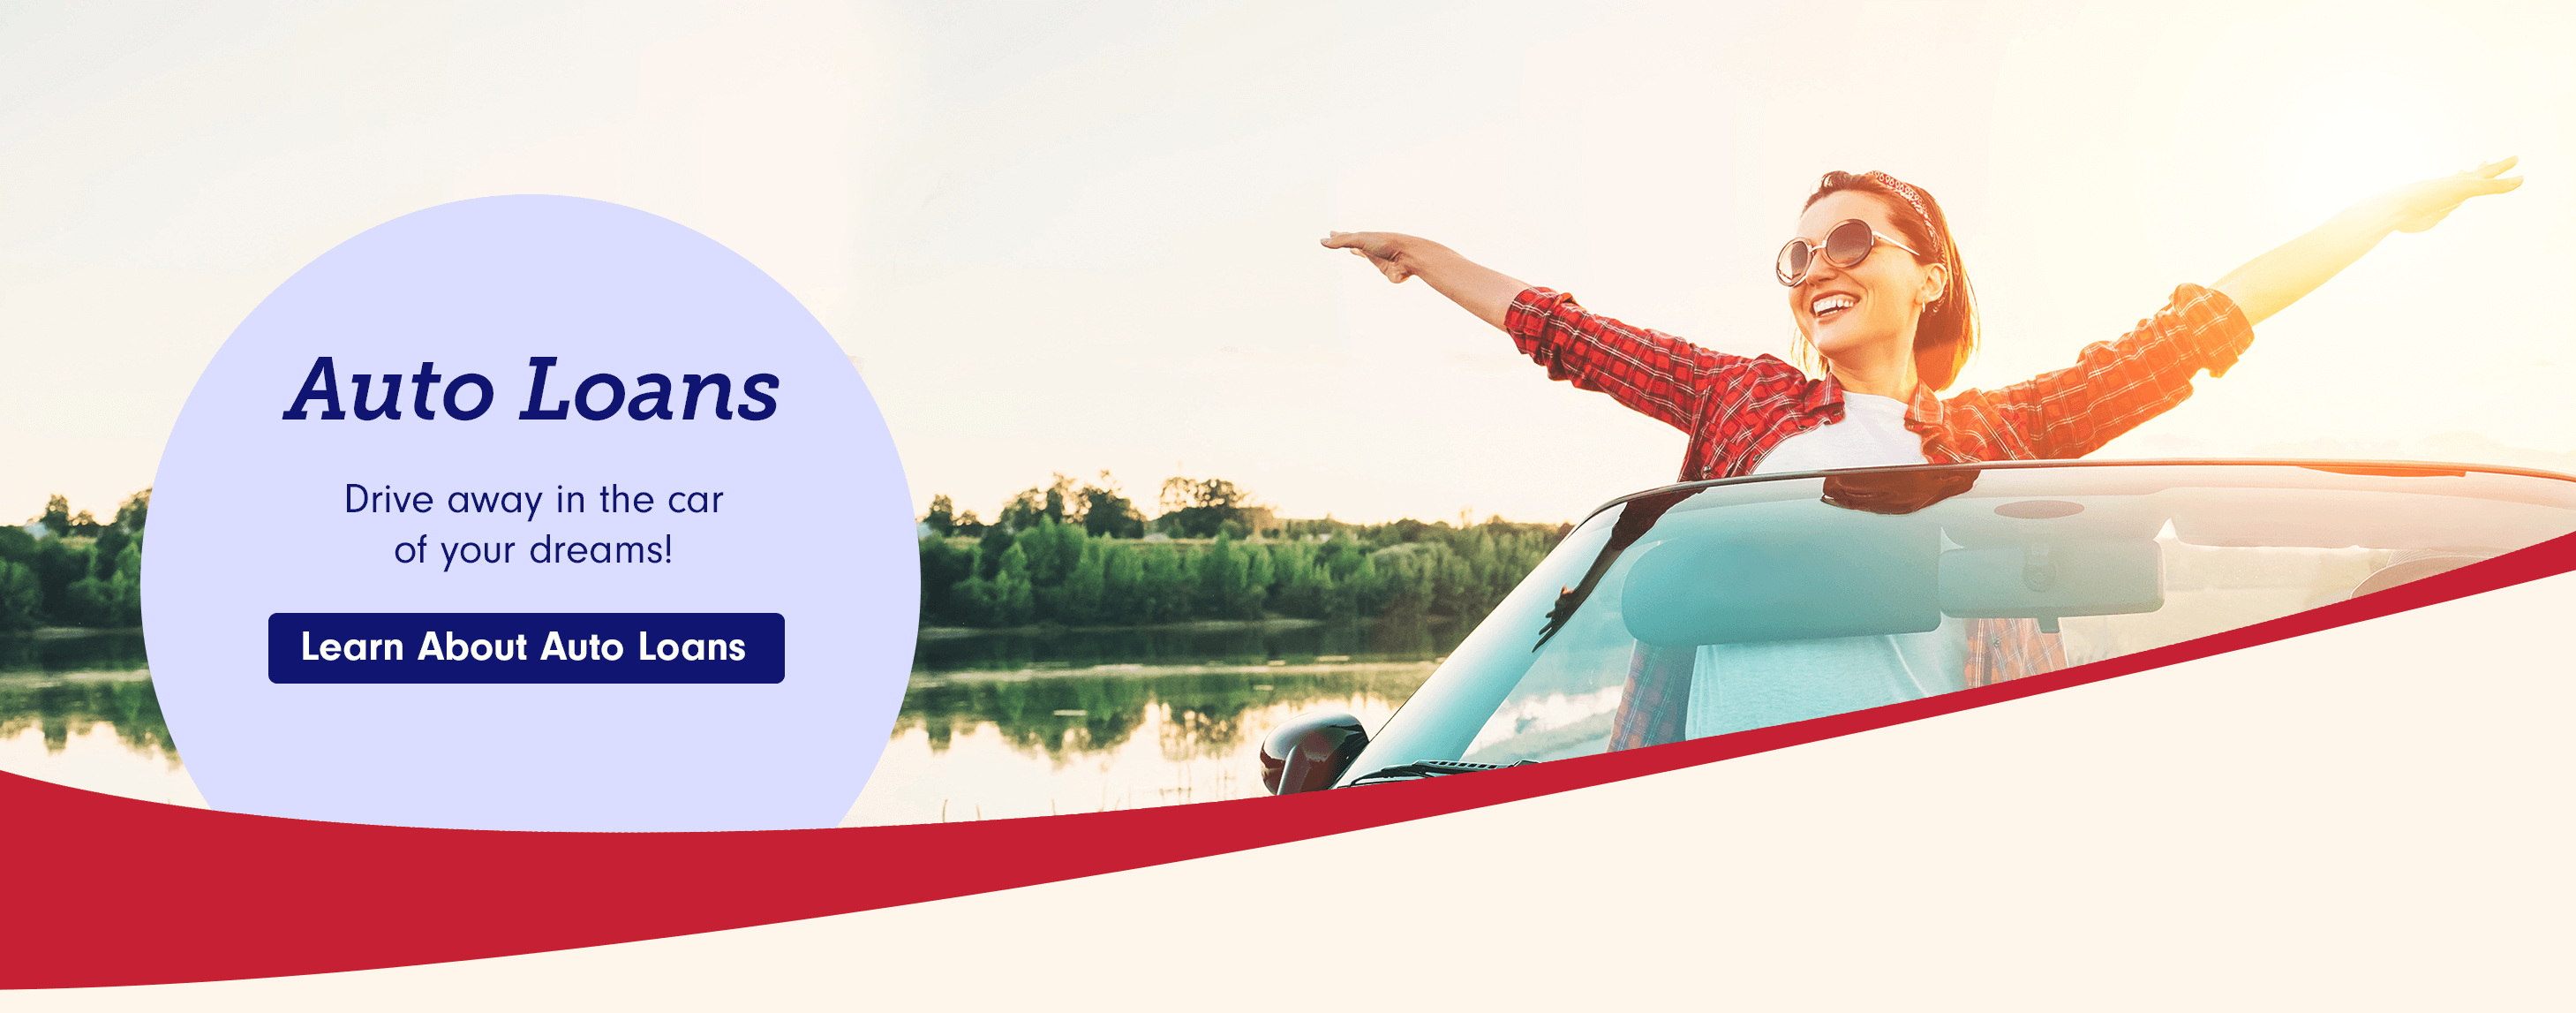 Auto Loans  Drive away in the car of your dreams! Learn about auto loans